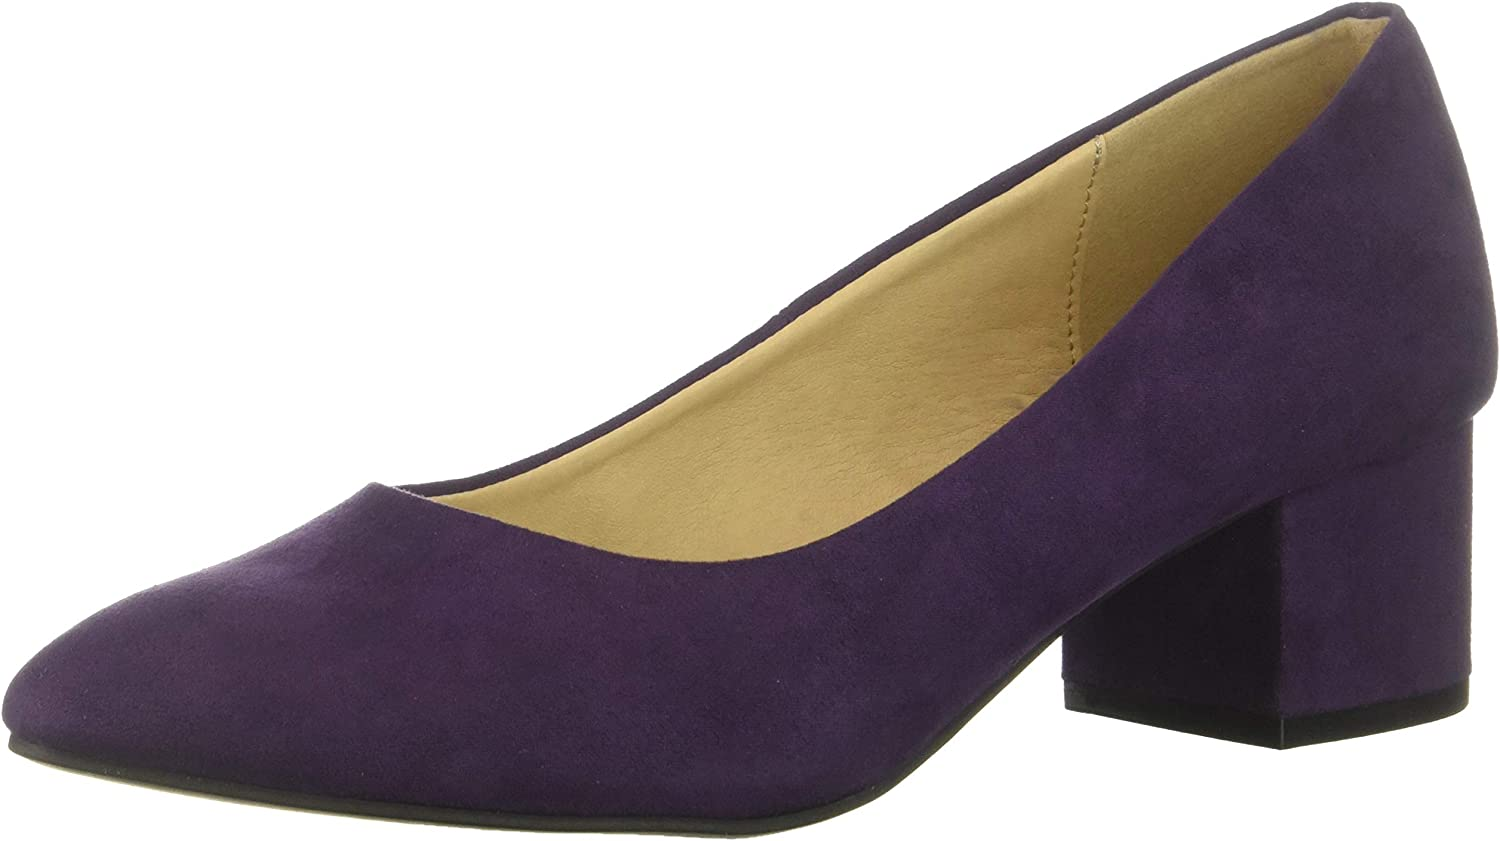 CL by Chinese Laundry Women's Highest Pump